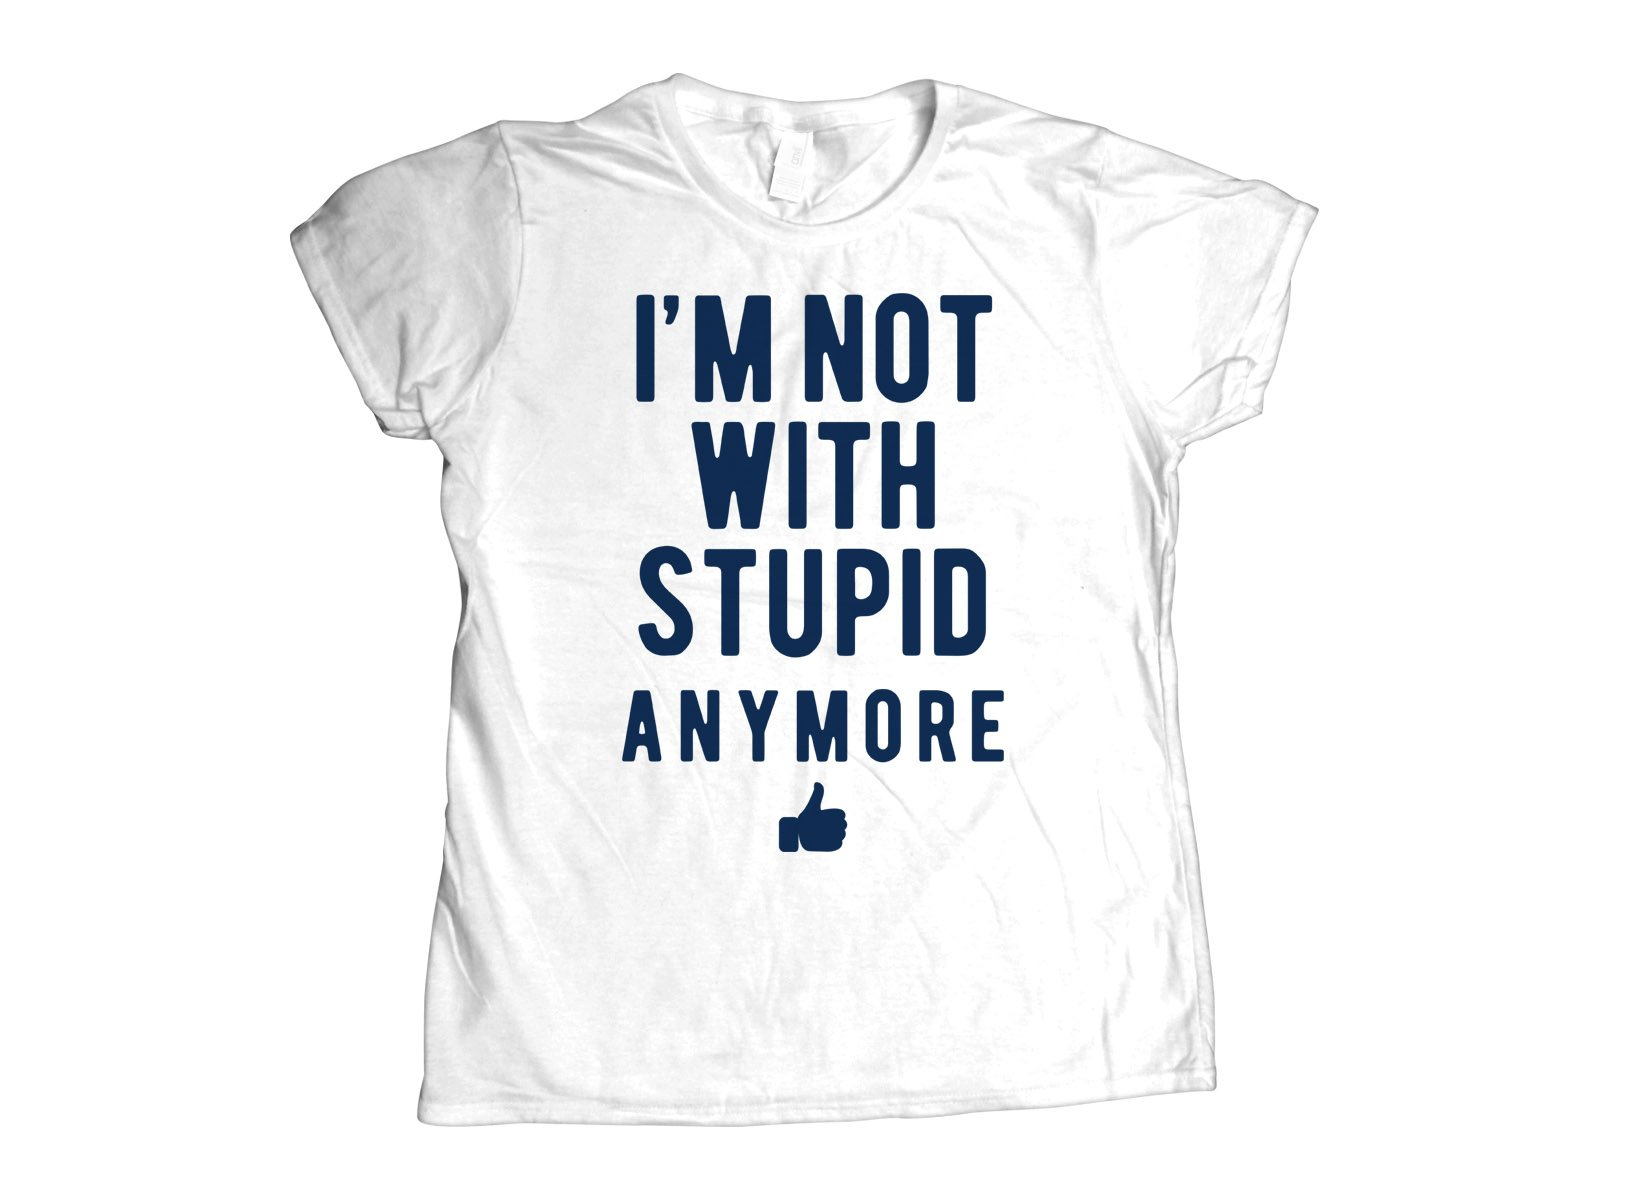 I'm Not With Stupid Anymore on Womens T-Shirt